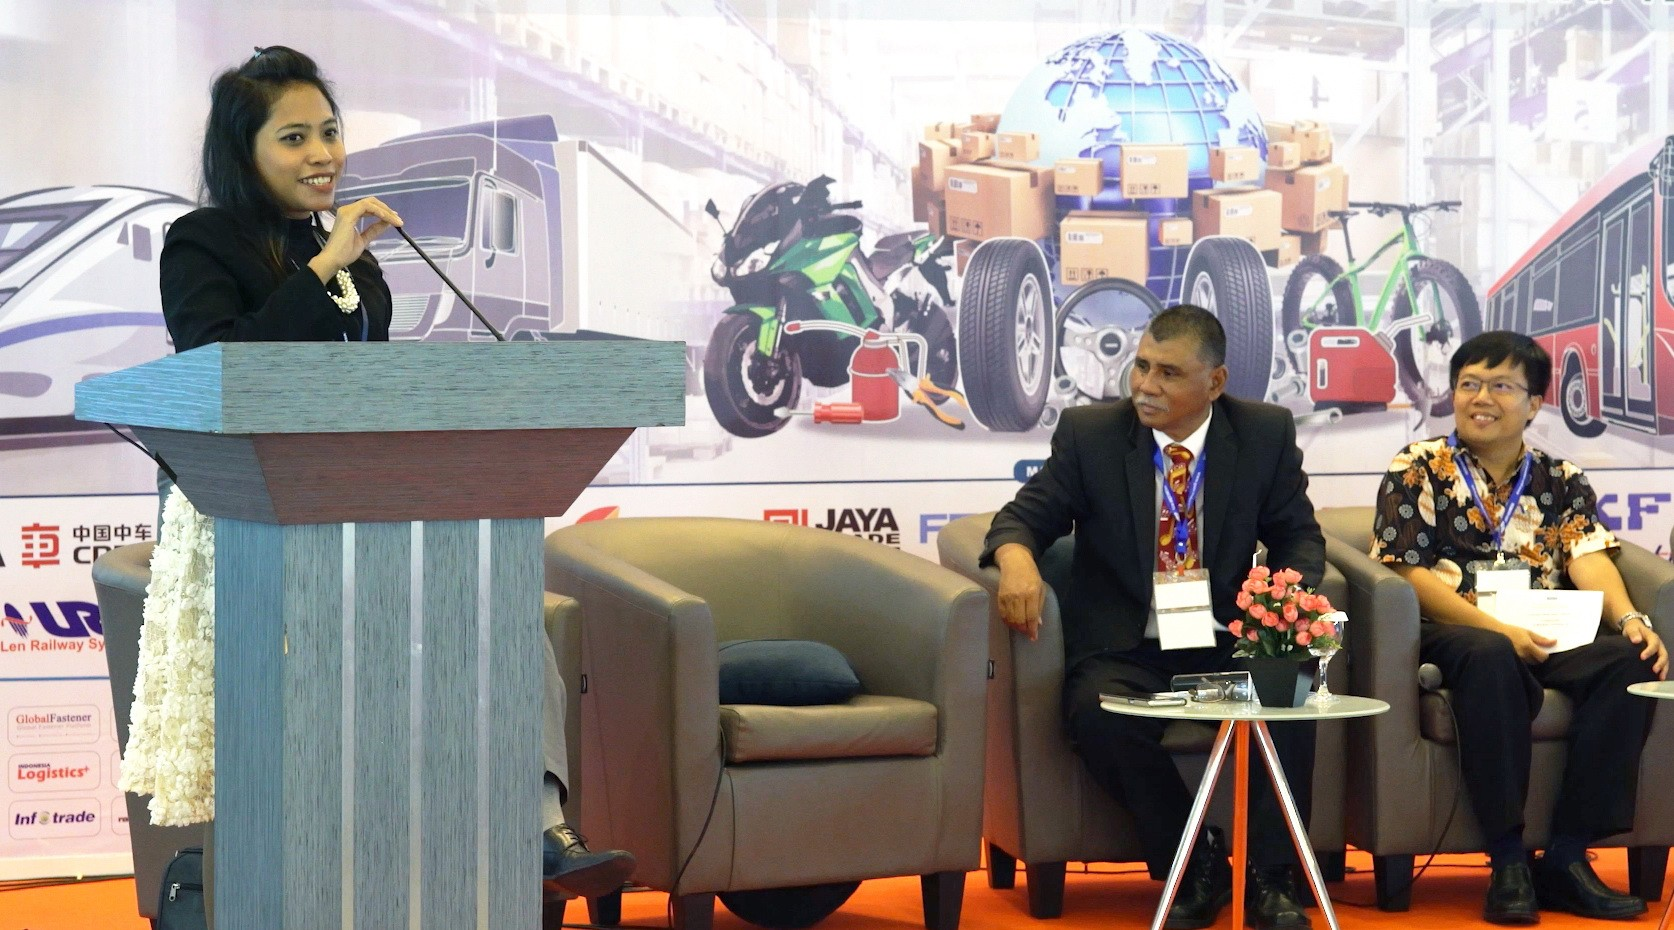 SkyWay at the Exhibition RailwayTech Indonesia 2018: Presentation of the Technology